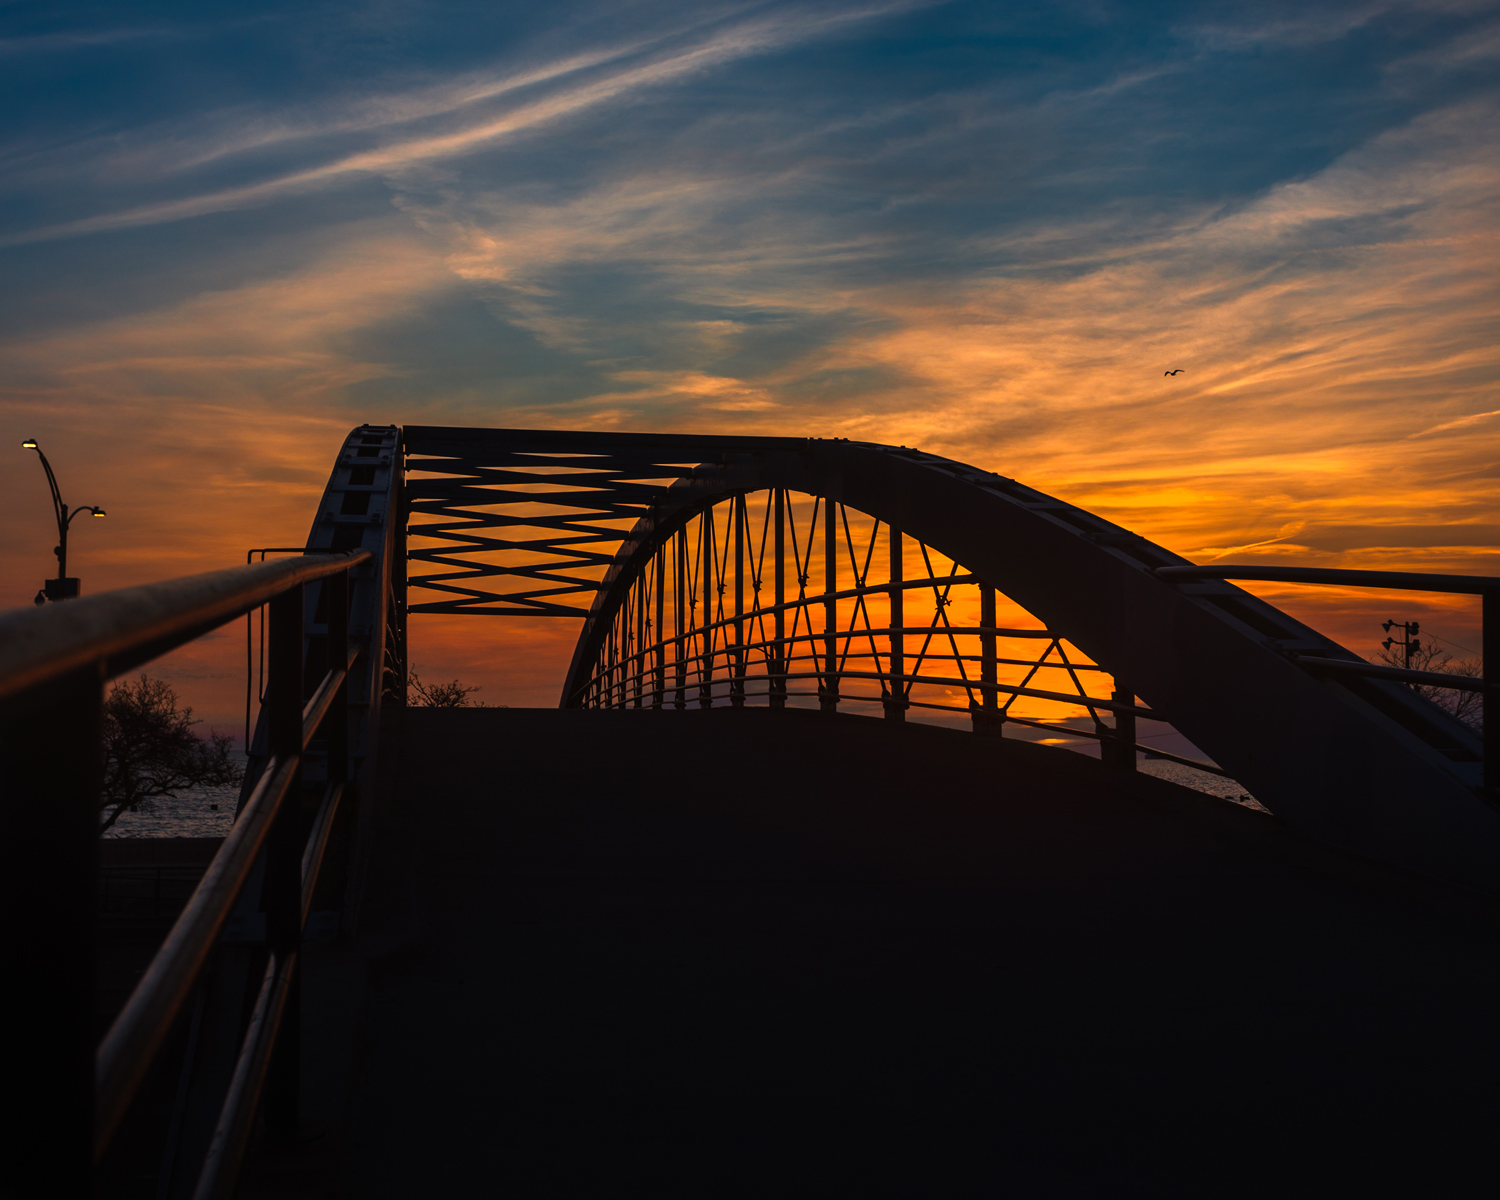 Sunrise Bridge No. 2